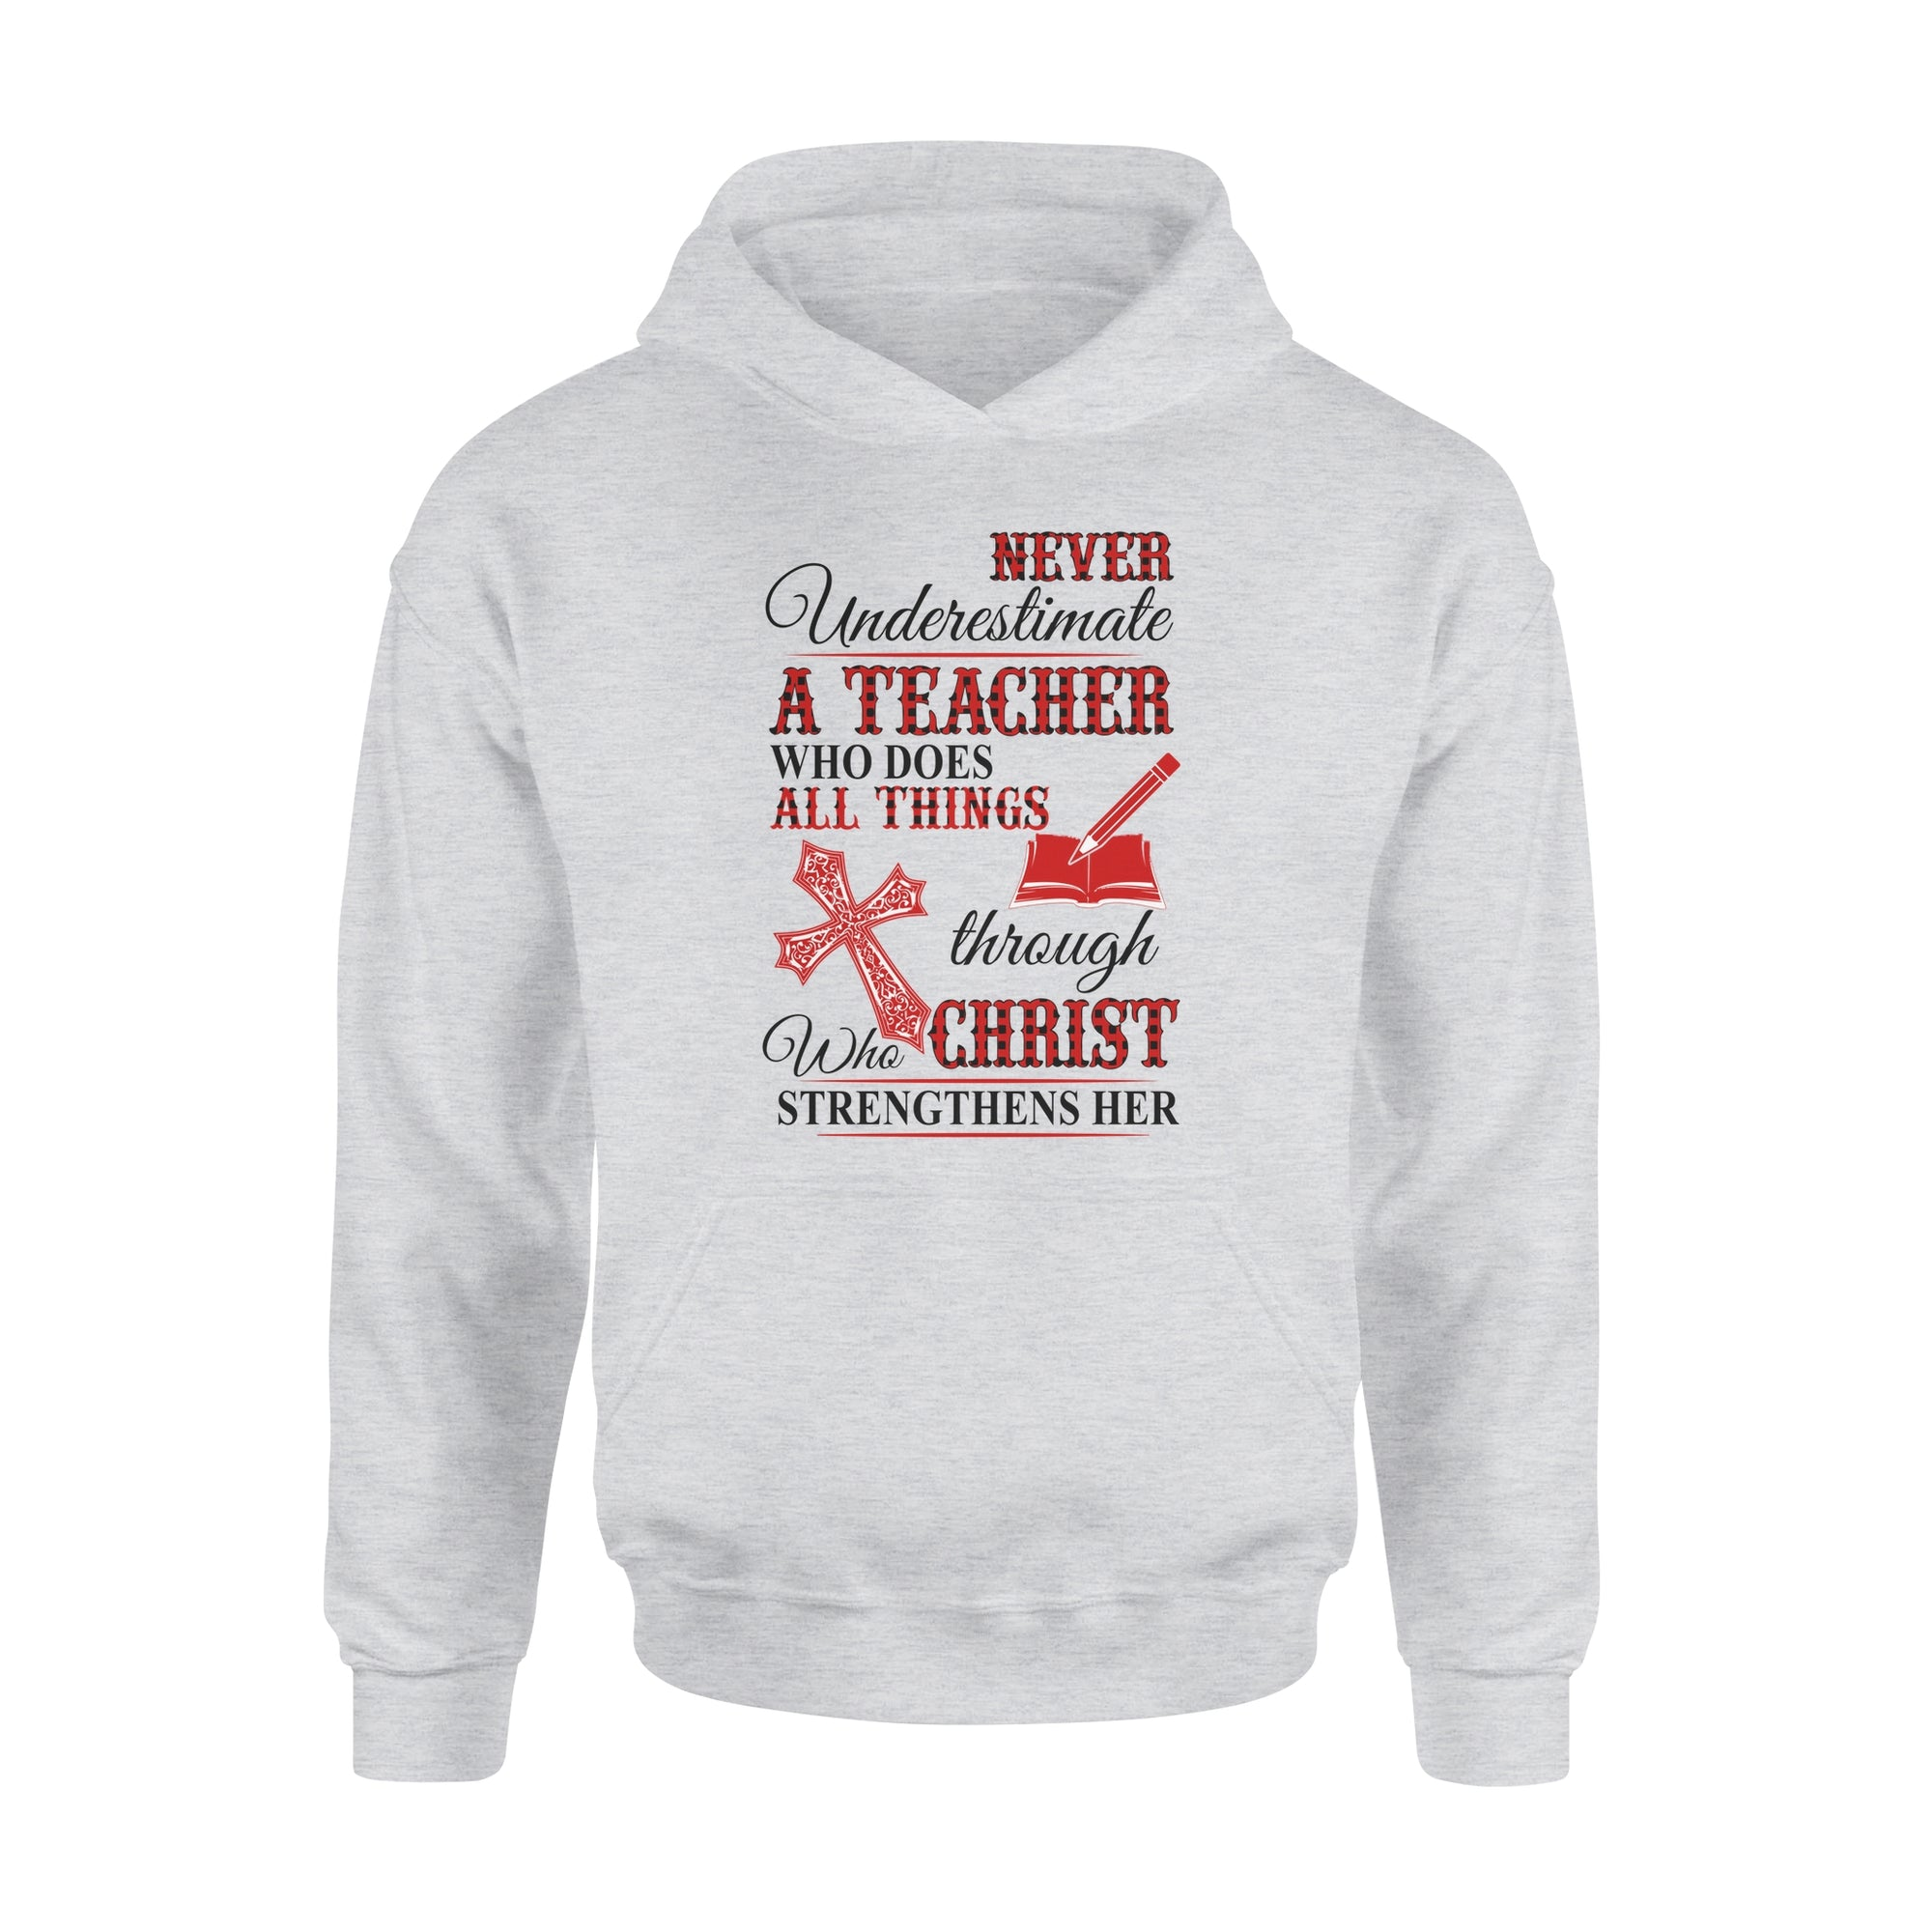 VIRA Premium Hoodie For Jesus Lovers & Awesome Teachers